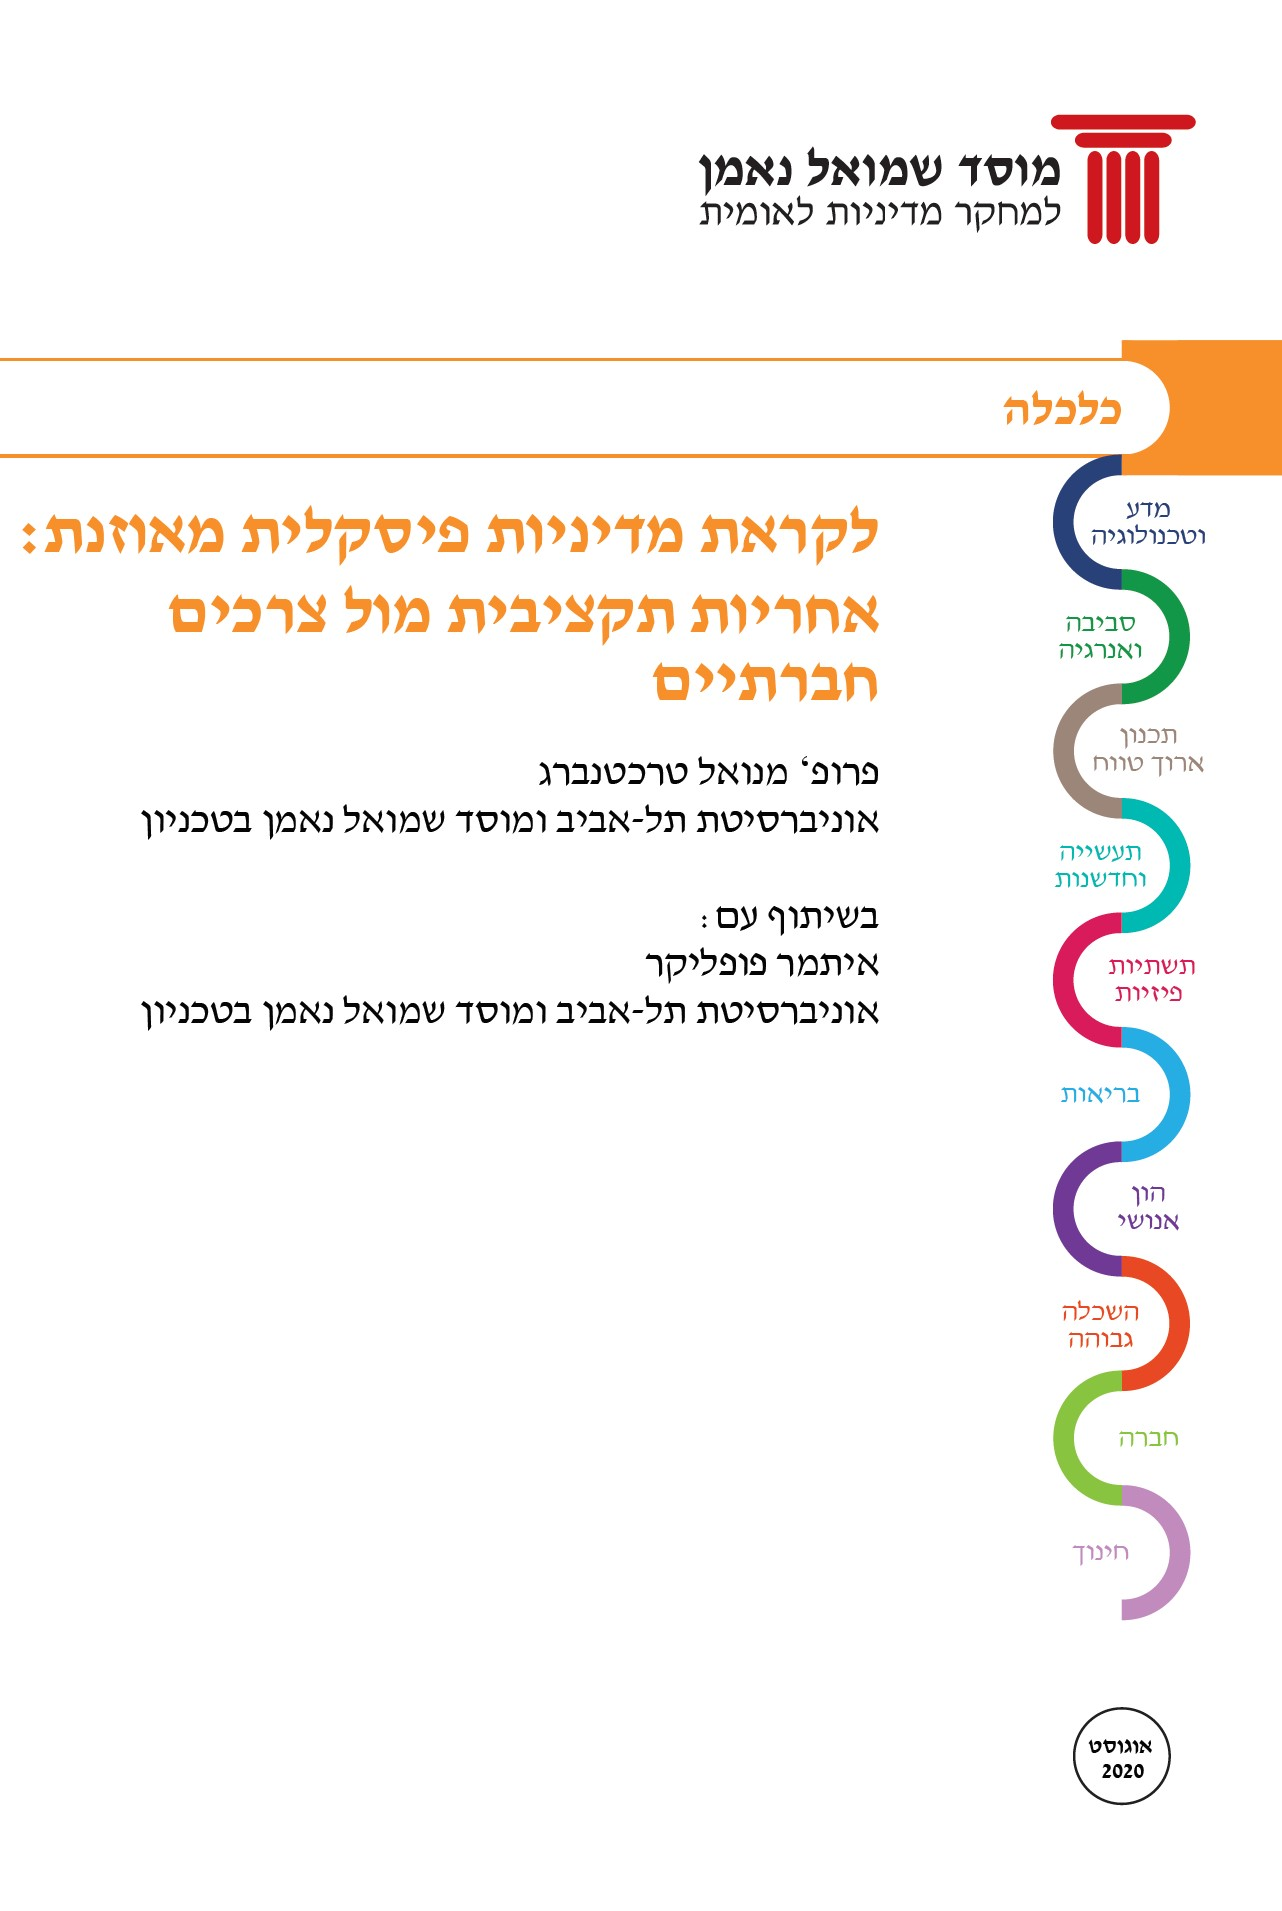 Towards a New Fiscal Policy for Israel: Balancing Budgetary Responsibility and Societal Needs